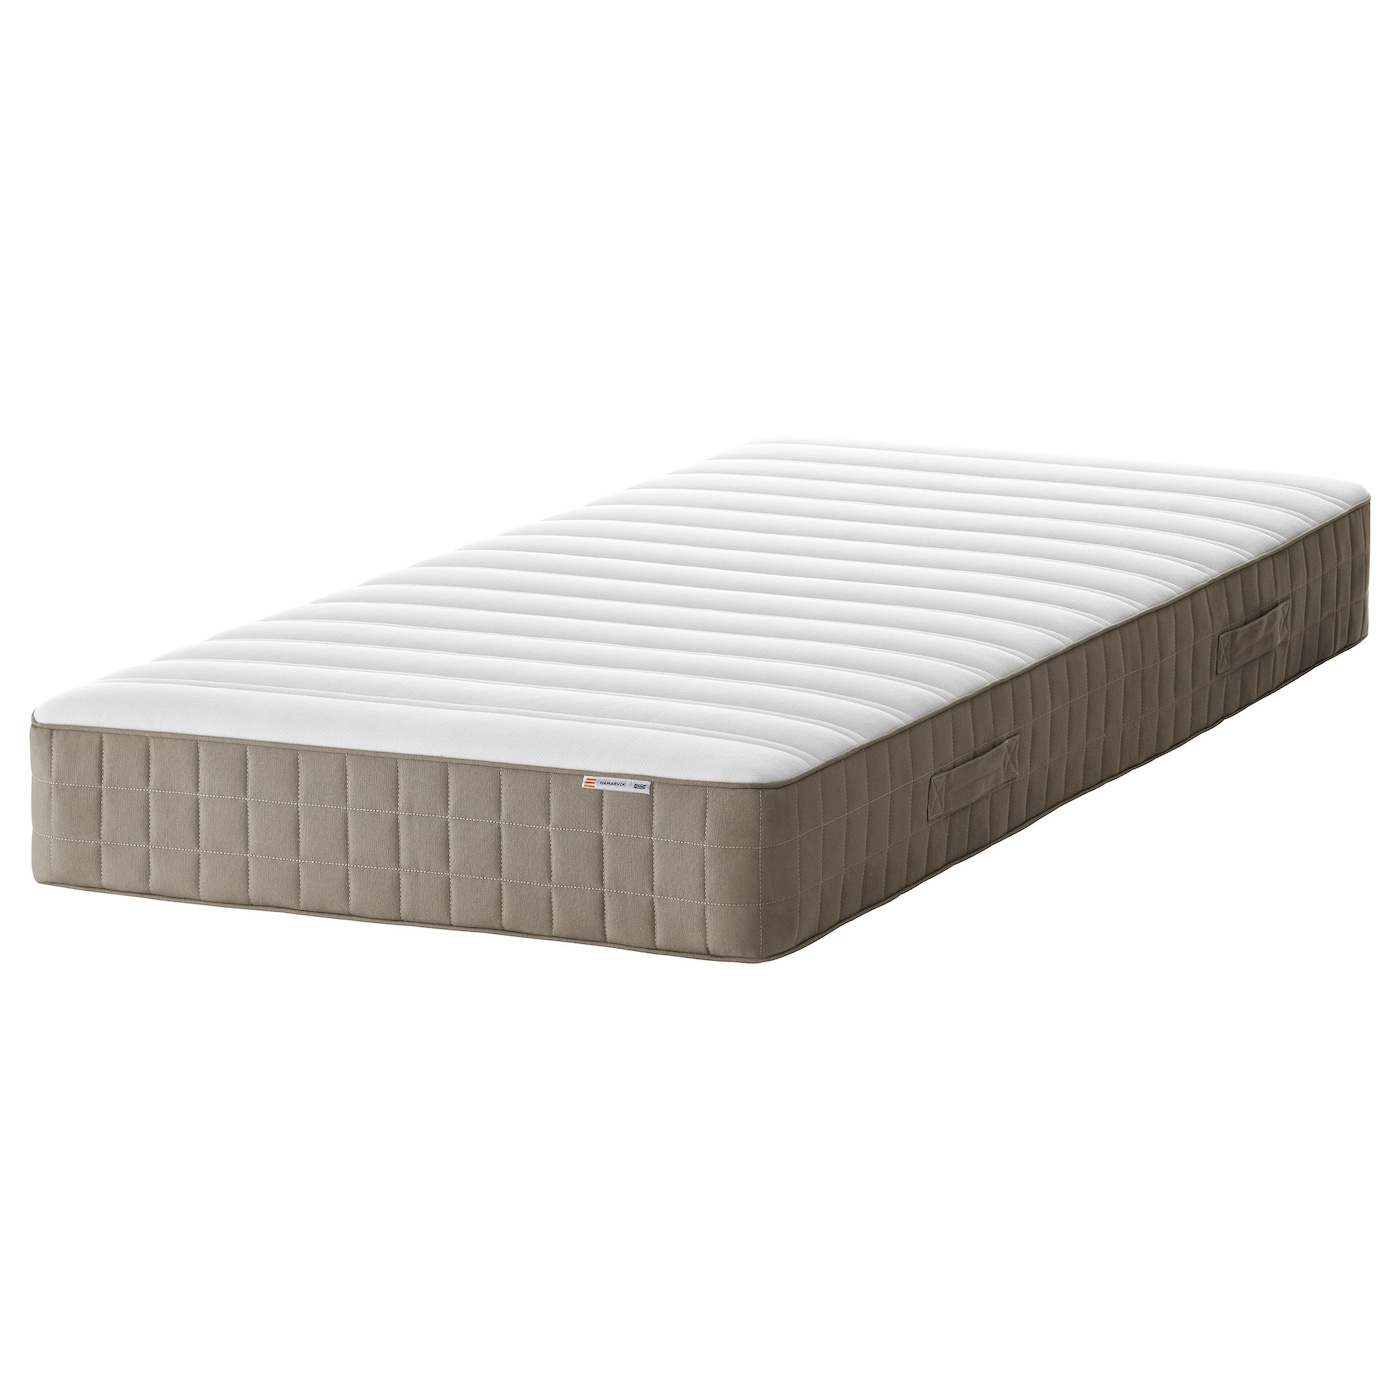 hamarvik matelas ressorts ferme beige fonc 90 x 200 cm ikea. Black Bedroom Furniture Sets. Home Design Ideas